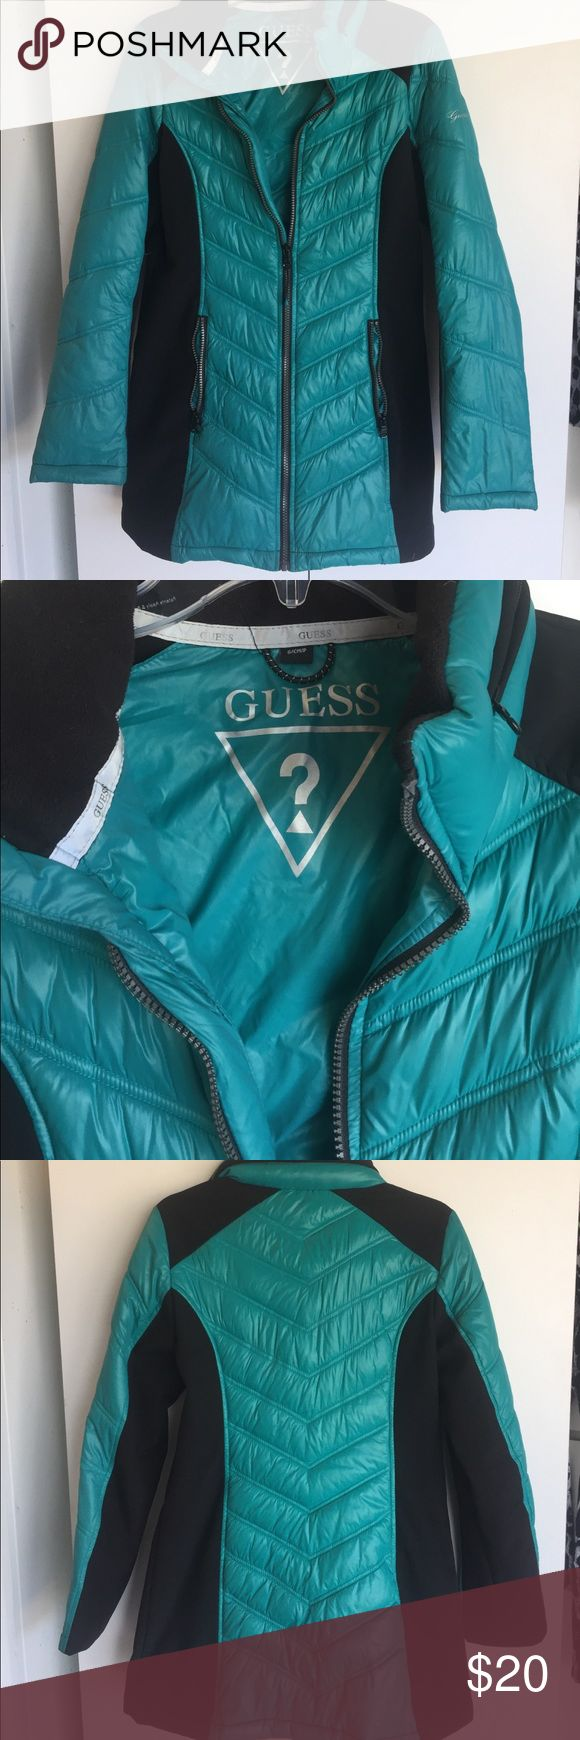 Guess Goose Down Feather Jacket Guess Jacket Size Small Guess Jackets & Coats